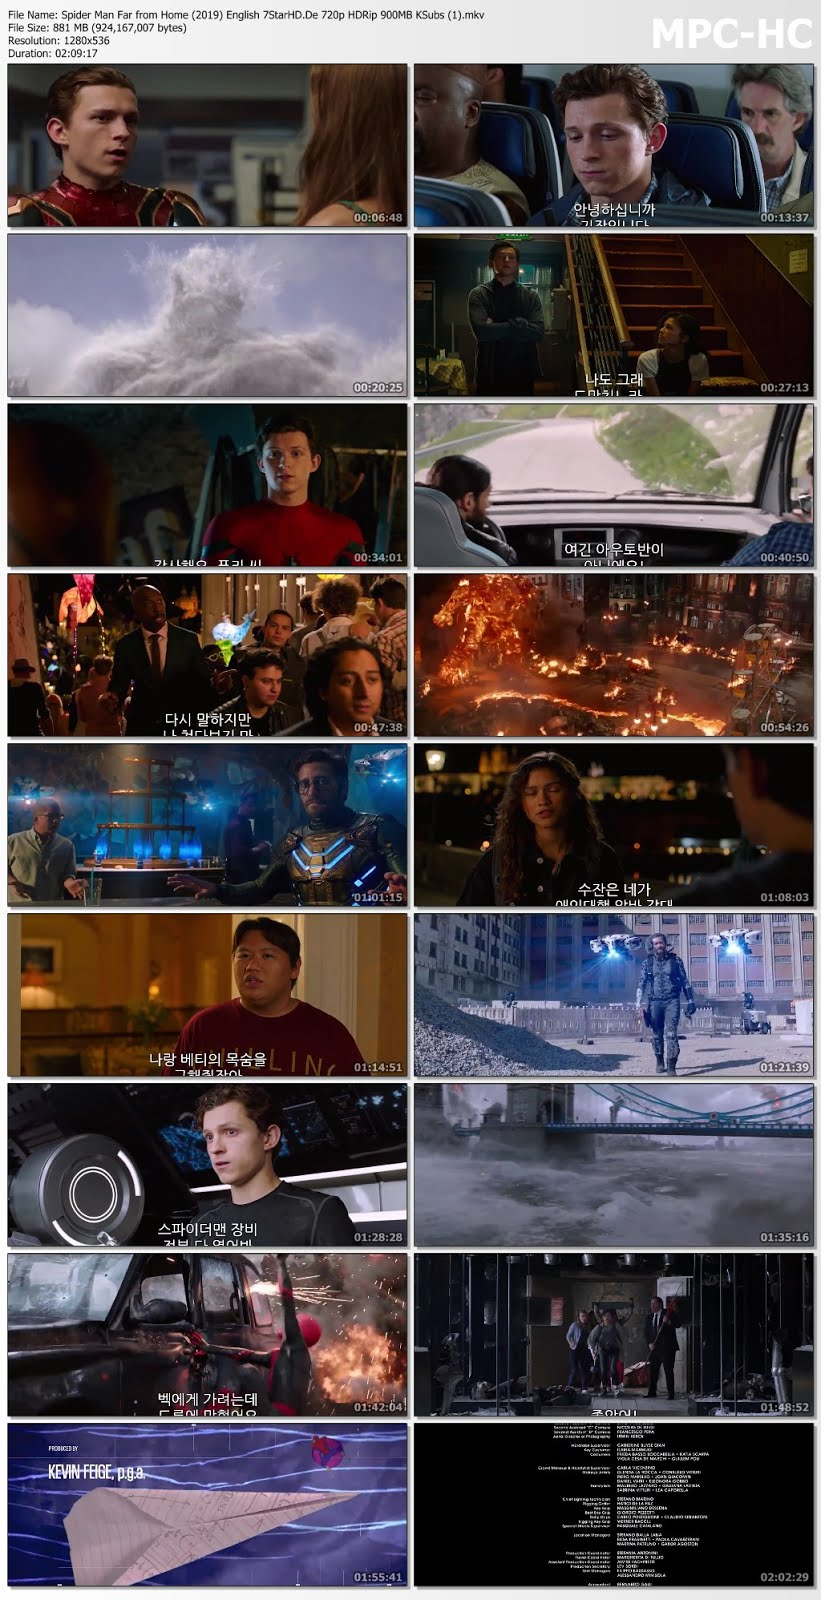 Spider Man Far from Home 2019 English Movies Download And